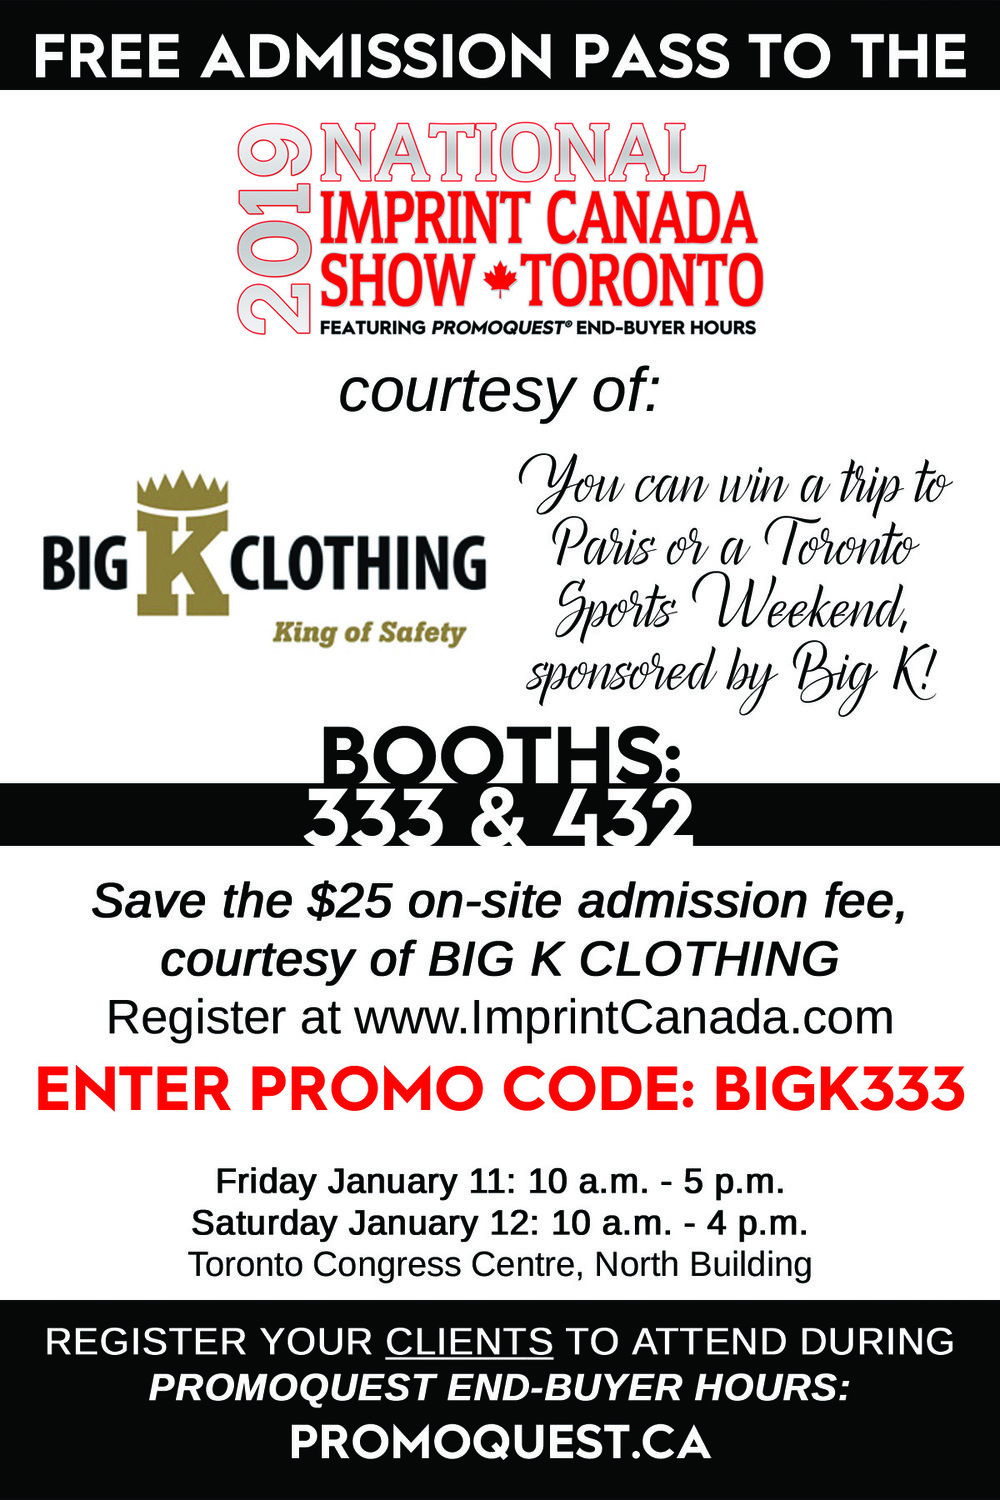 Big K Toronto Imprint Show Free Pass 2019